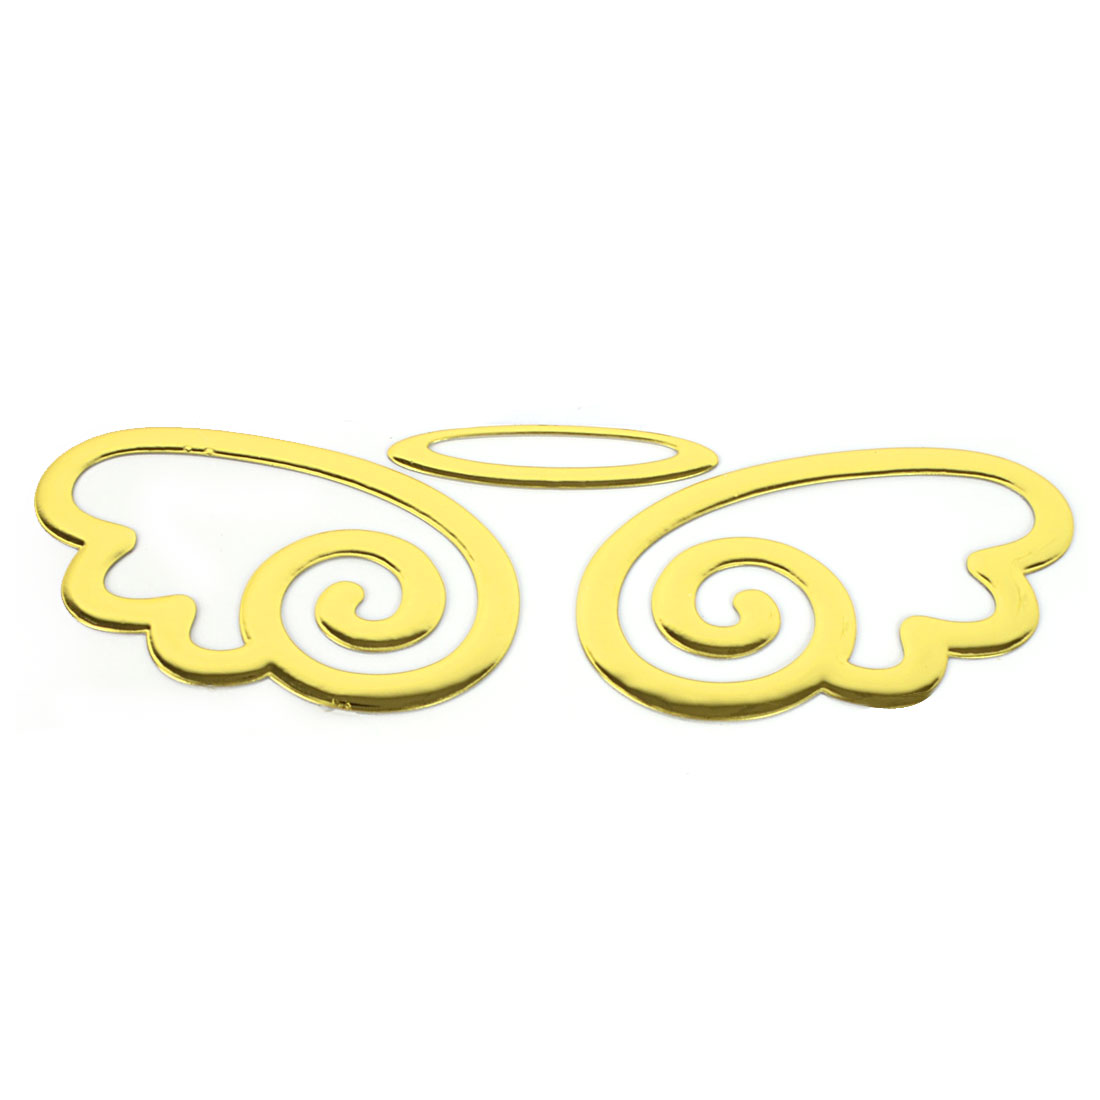 Gold Tone Plastic Flying Angel Wings Car Badge Emblem Sticker